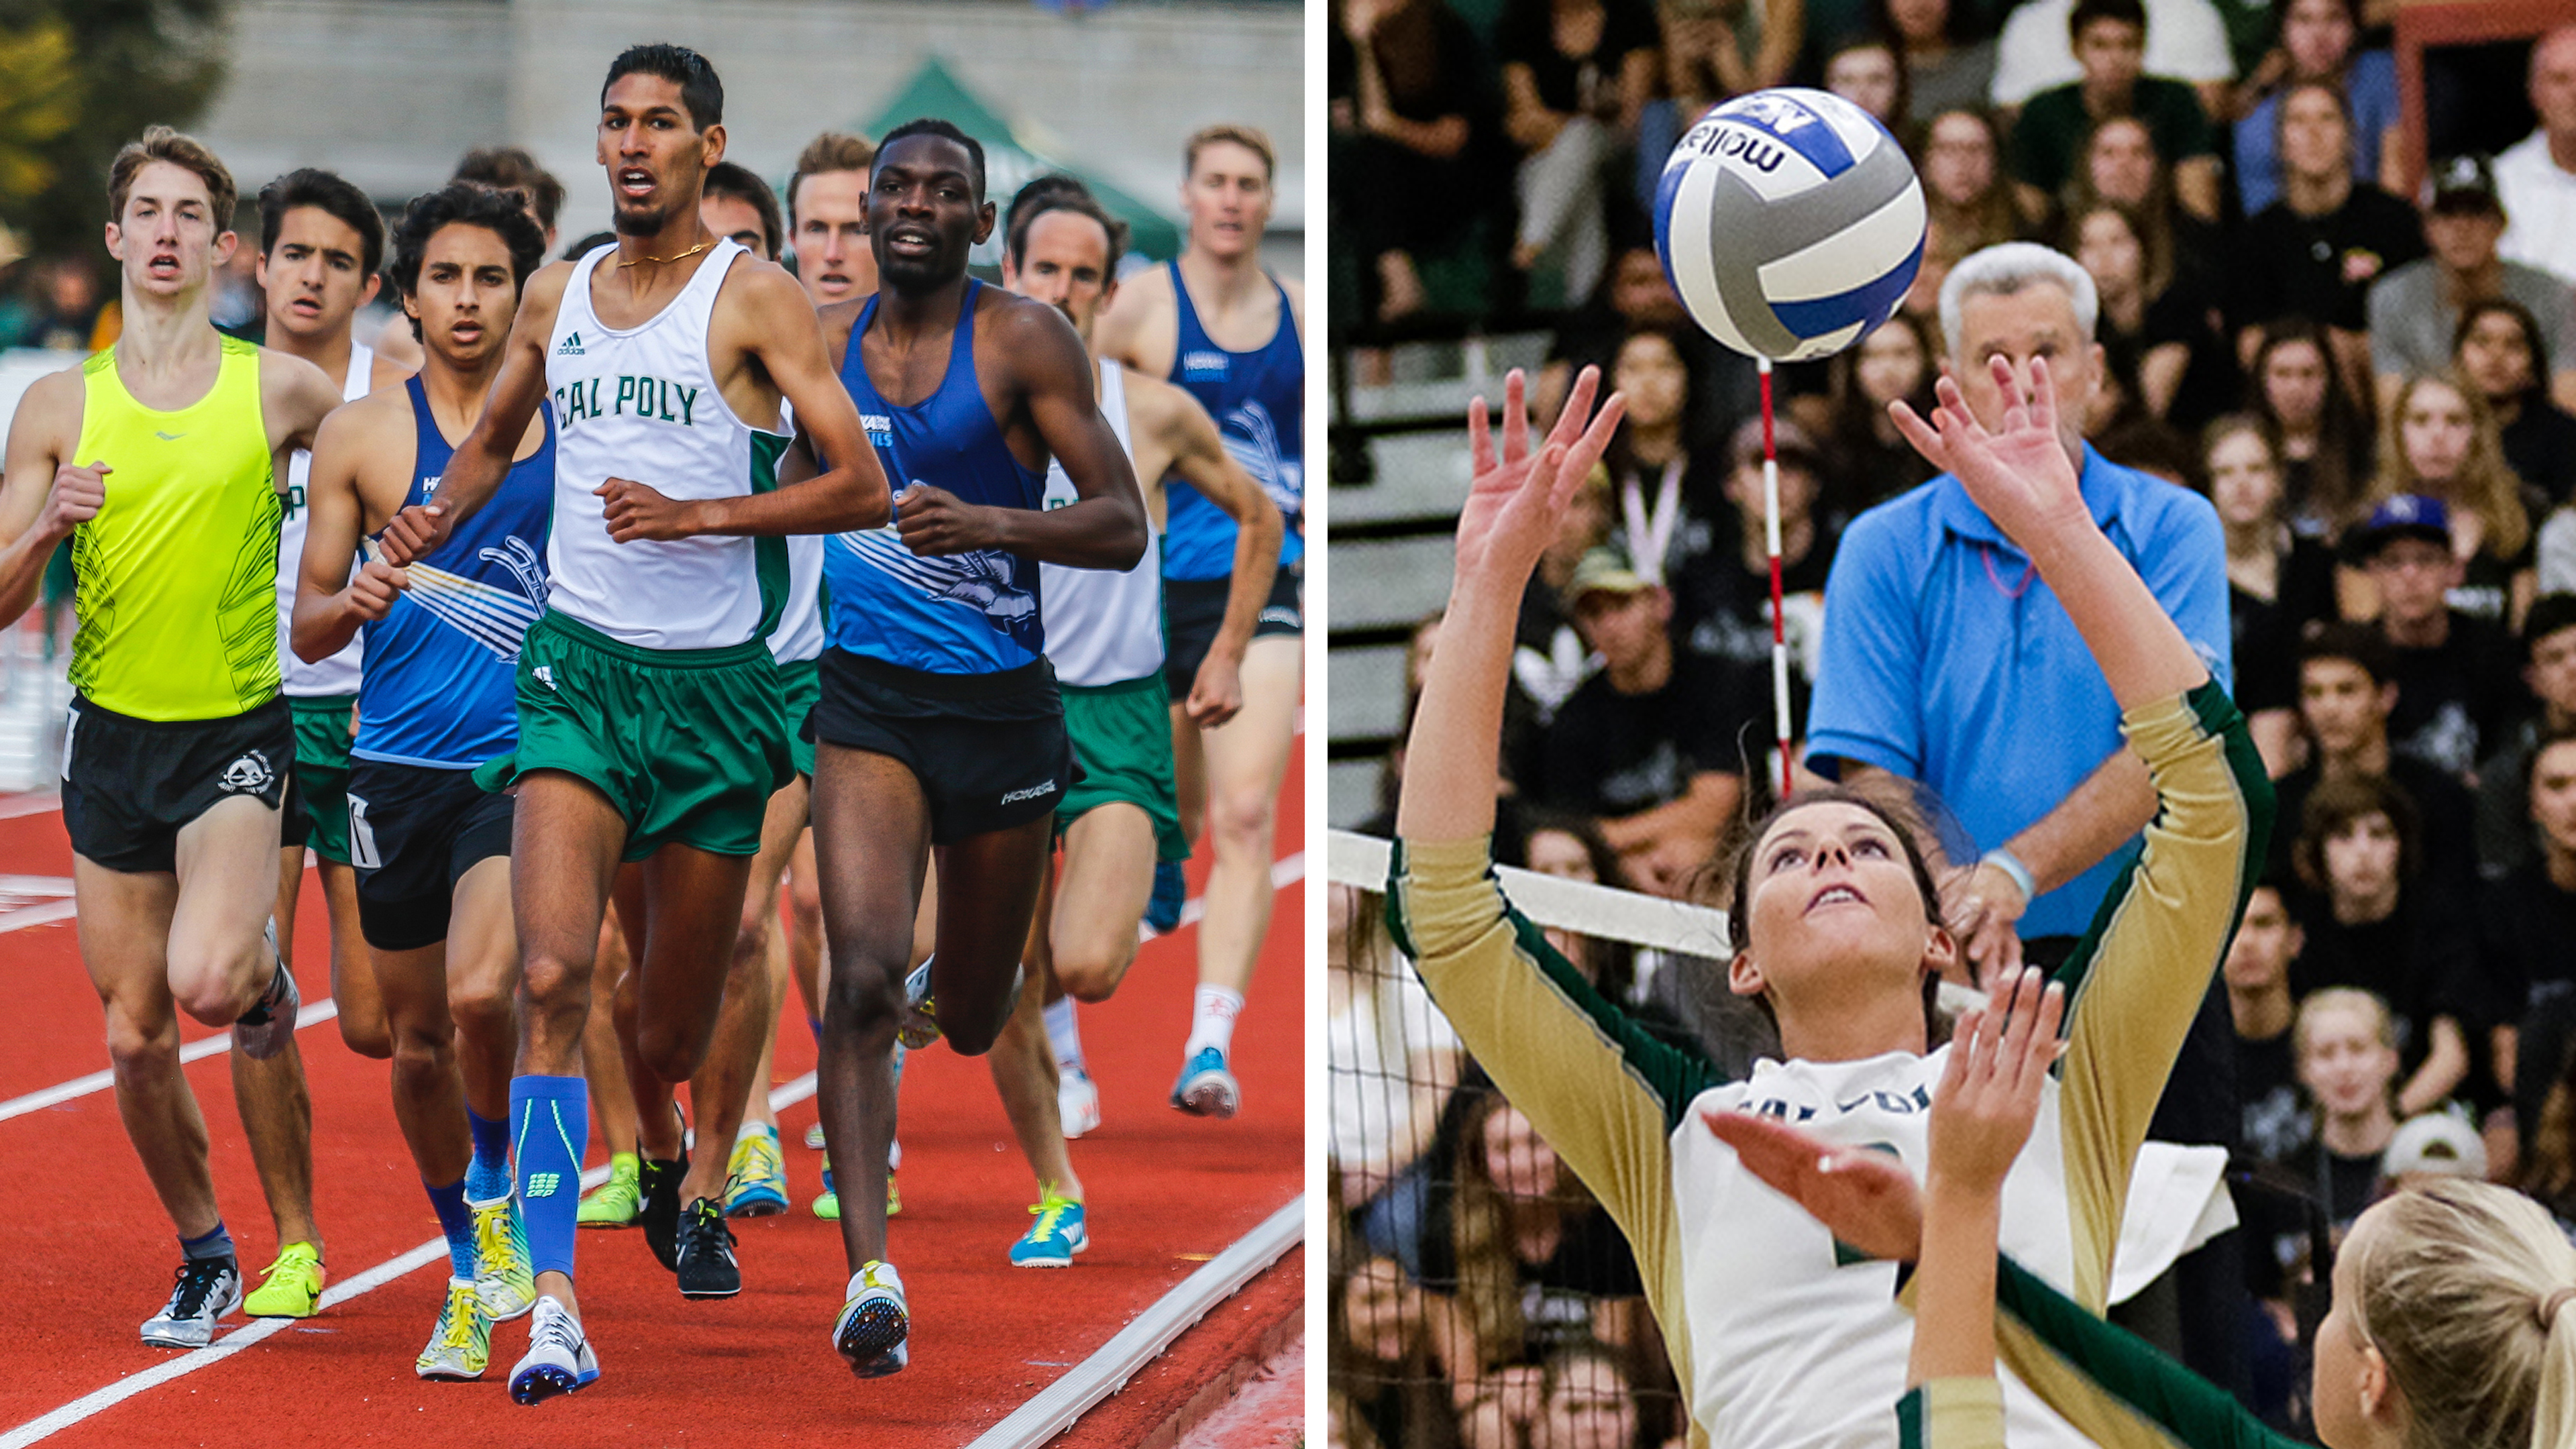 Cal Poly Athletes of the Year Swarnjit Boyal running and Taylor Nelson setting a volleball